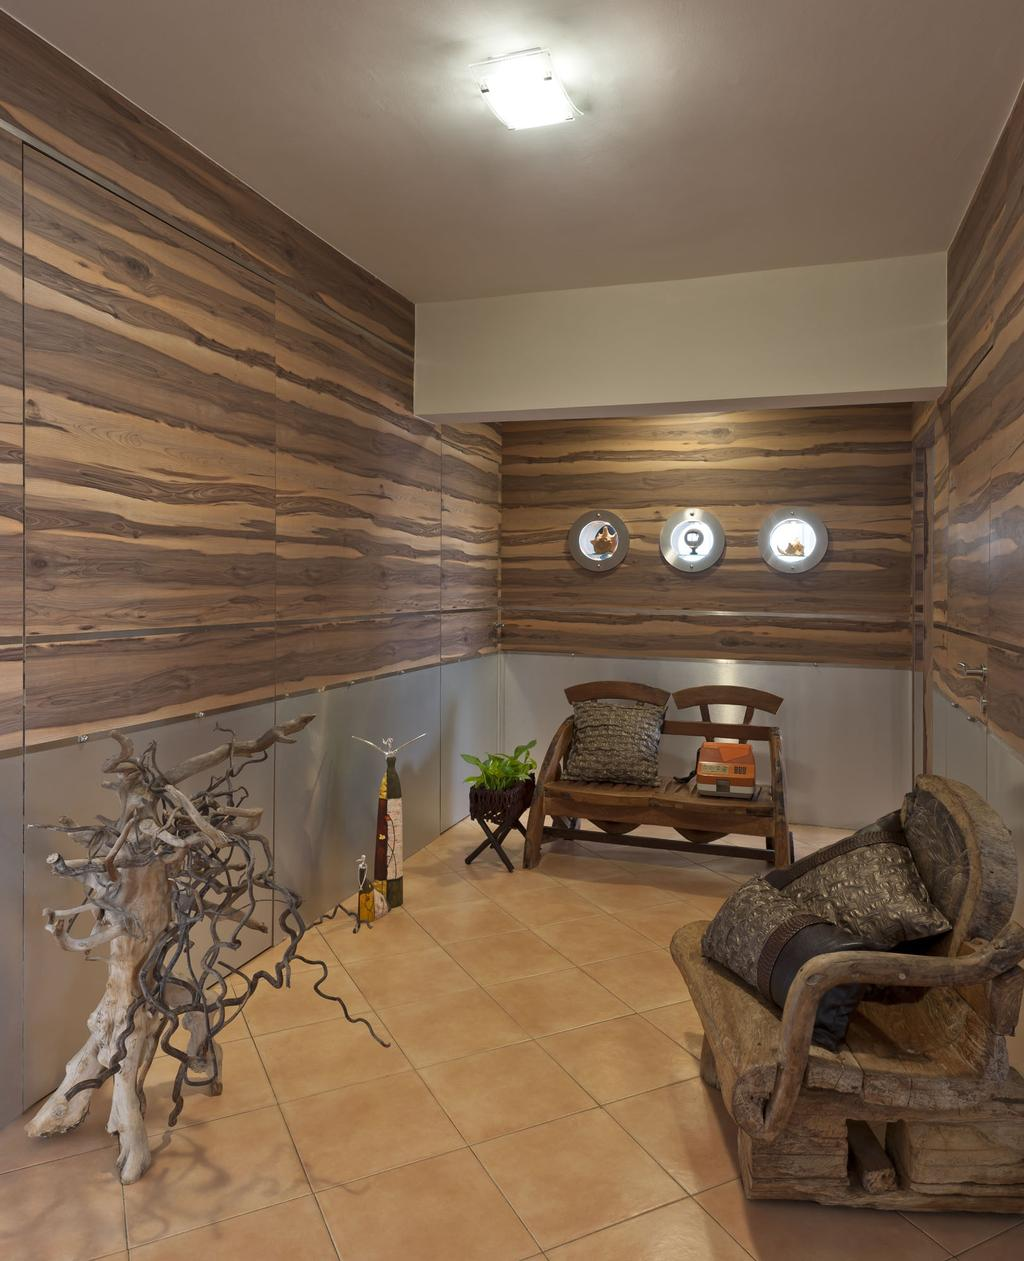 Traditional, HDB, Living Room, New Upper Changi Road, Interior Designer, D5 Studio Image, Wooden Chairs, Tree, Laminated Walls, Orange Tiles, Recessed Lights, Wooden Theme, Brown Flooring, Brown Walls, Planted Tree, Wood Bench, Antler, Chair, Furniture, Indoors, Interior Design